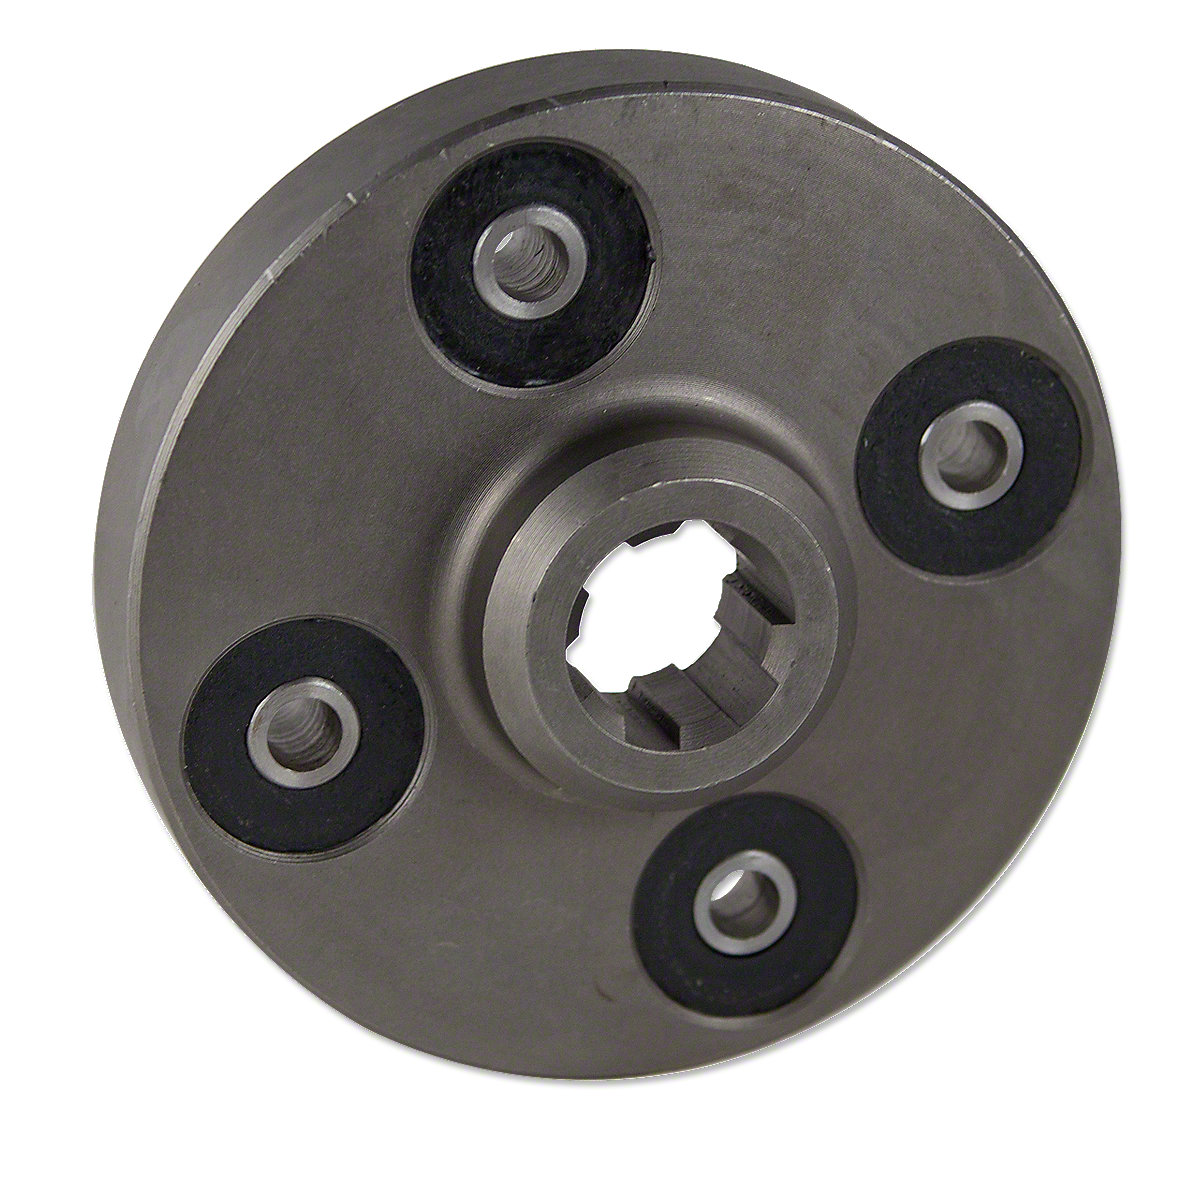 Abc front hydraulic pump drive hub adapter